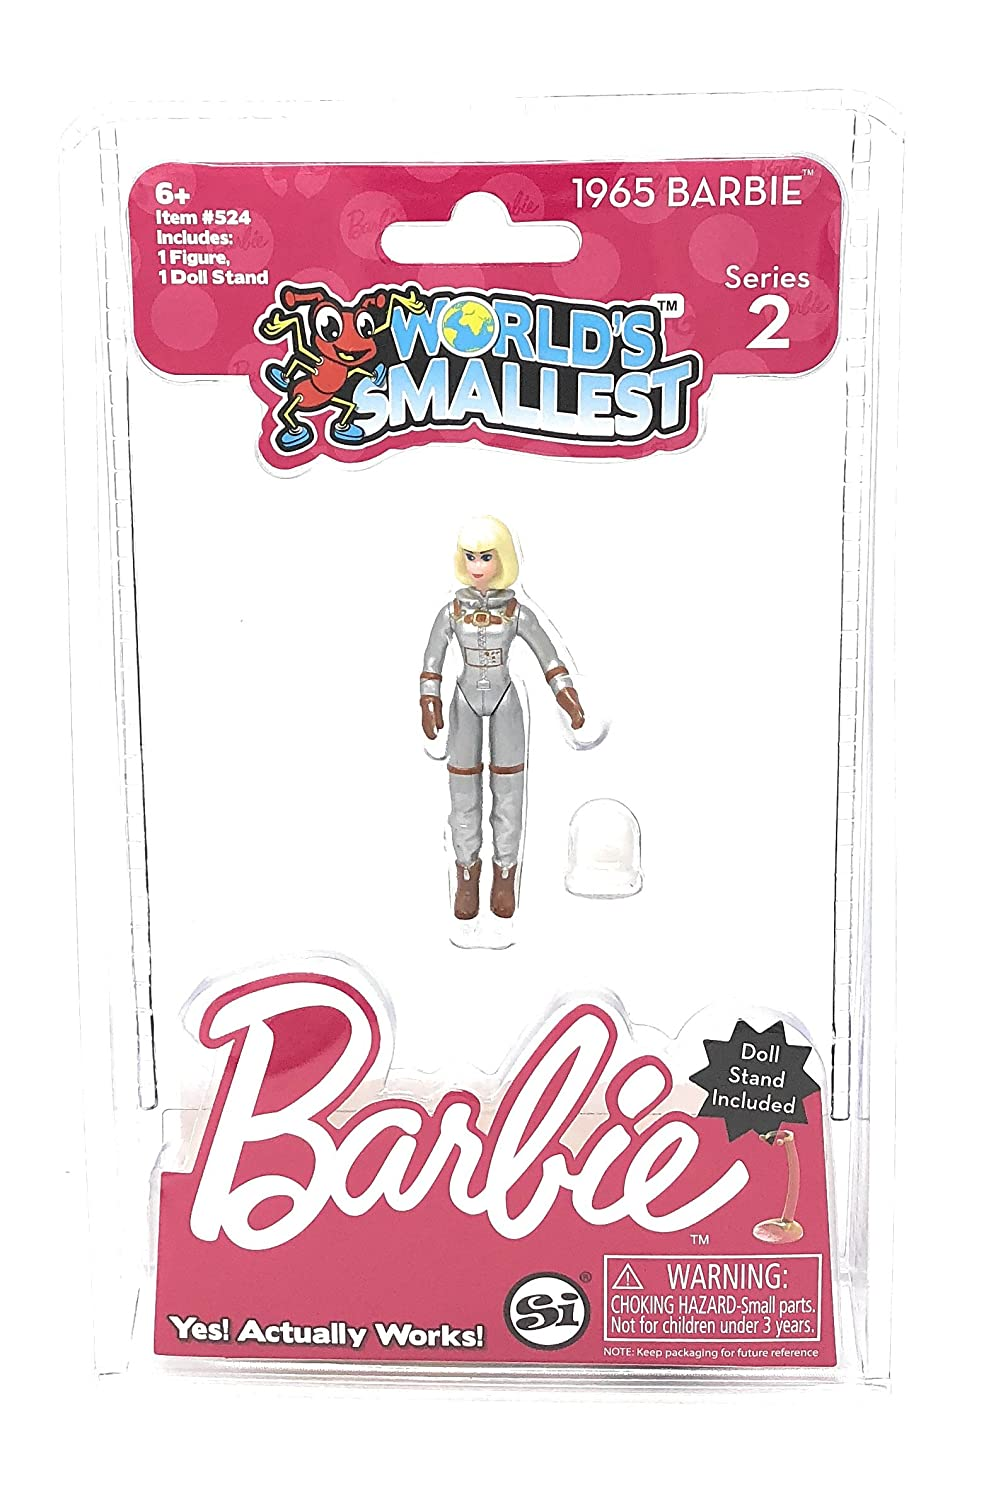 1992 Totally Hair Worlds Smallest Barbie Series 2-2 Pack Bundle 1965 Astronaut